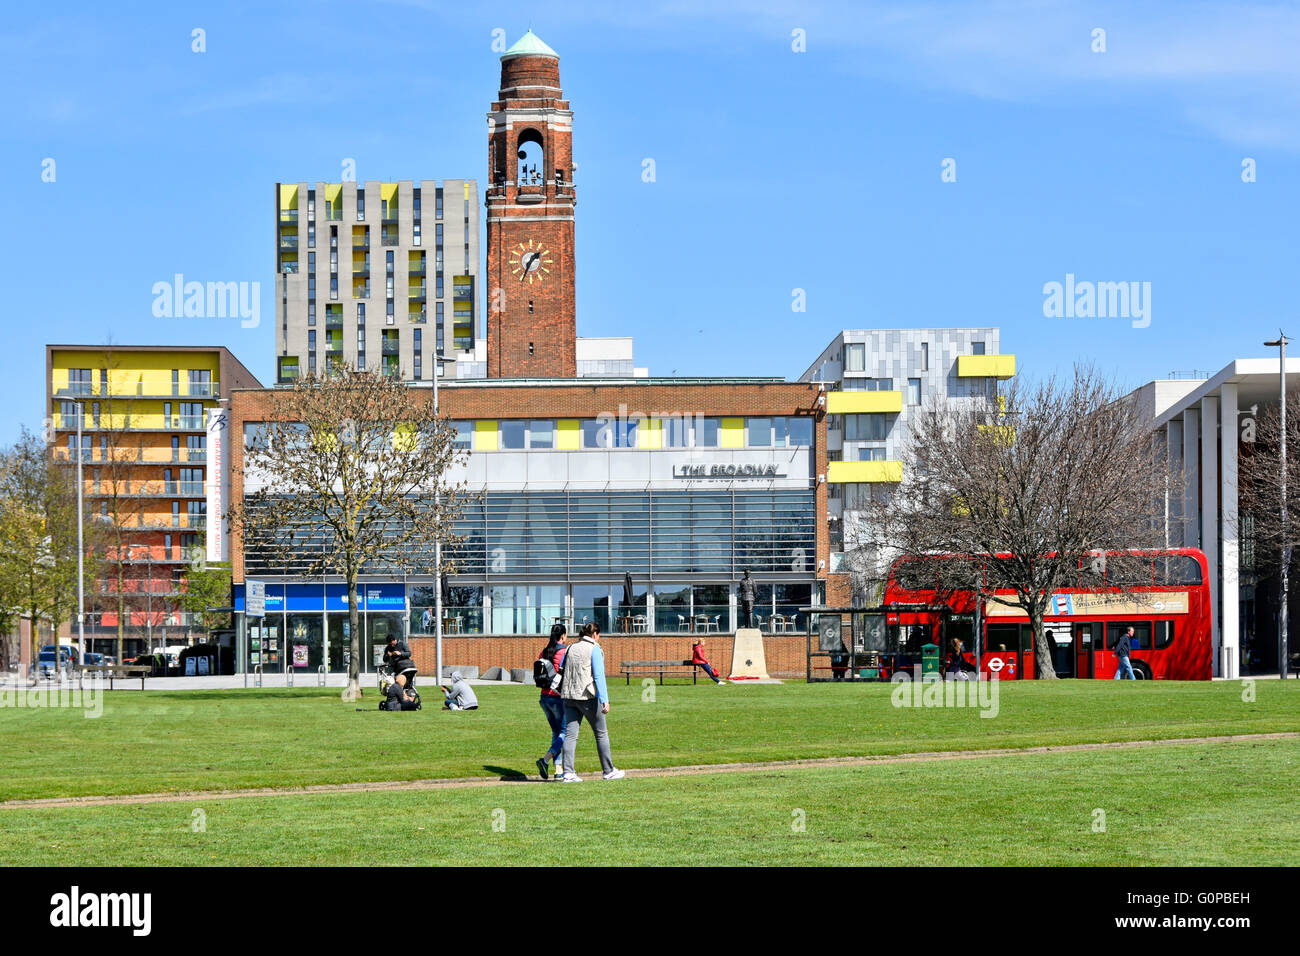 Part of Barking town centre from adjacent open space with clock tower, Broadway Theatre & modern flats London - Stock Image